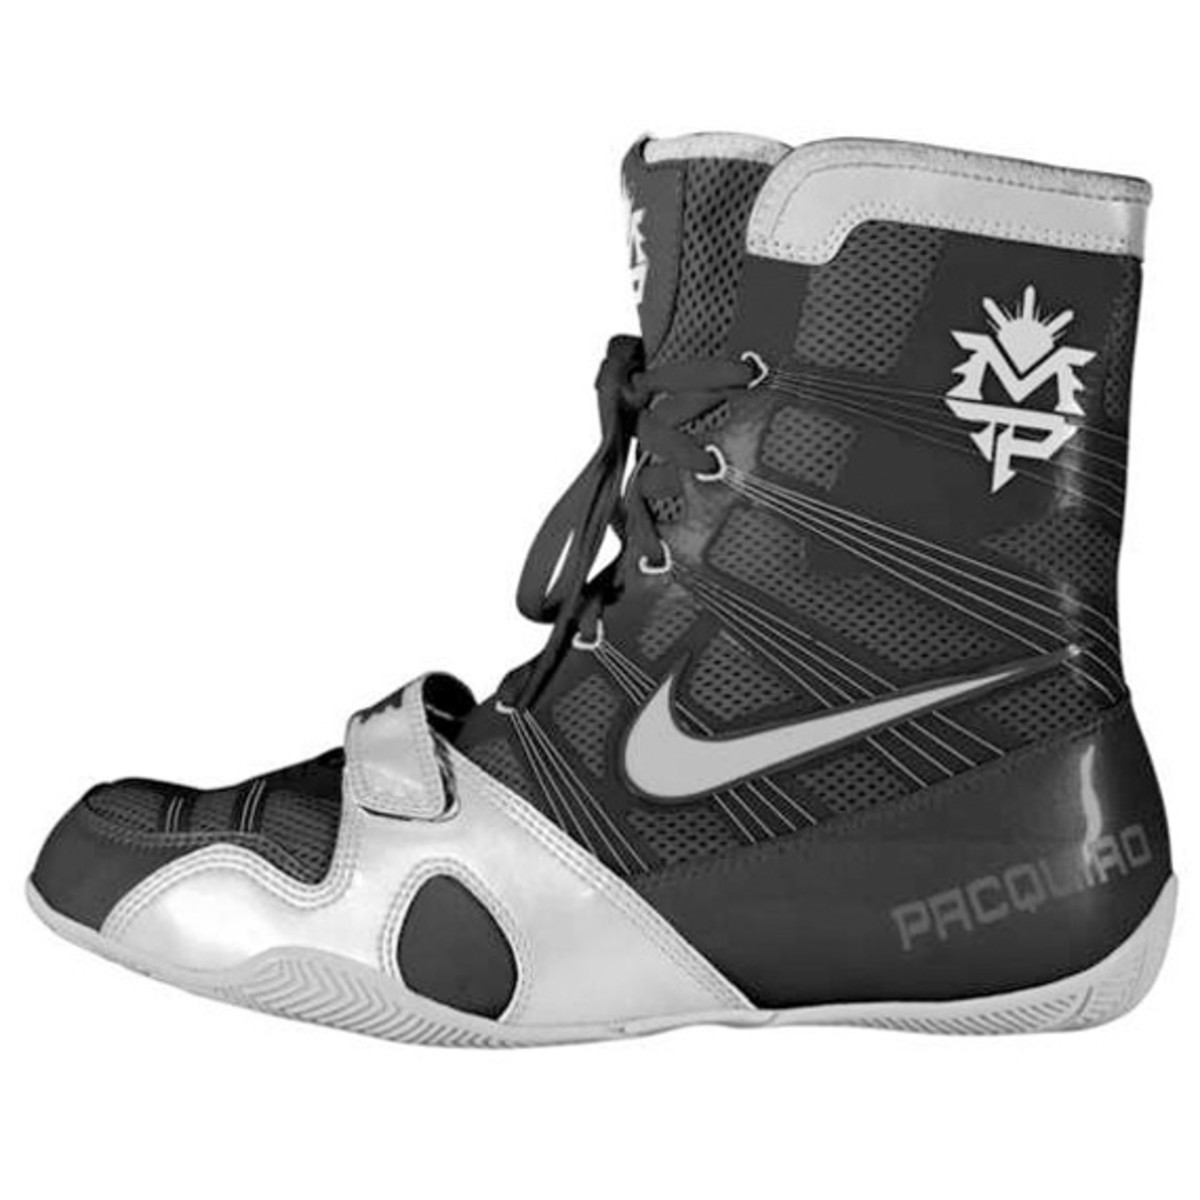 manny-pacquiao-nike-hyperko-mp-boxing-boot-new-colors-02